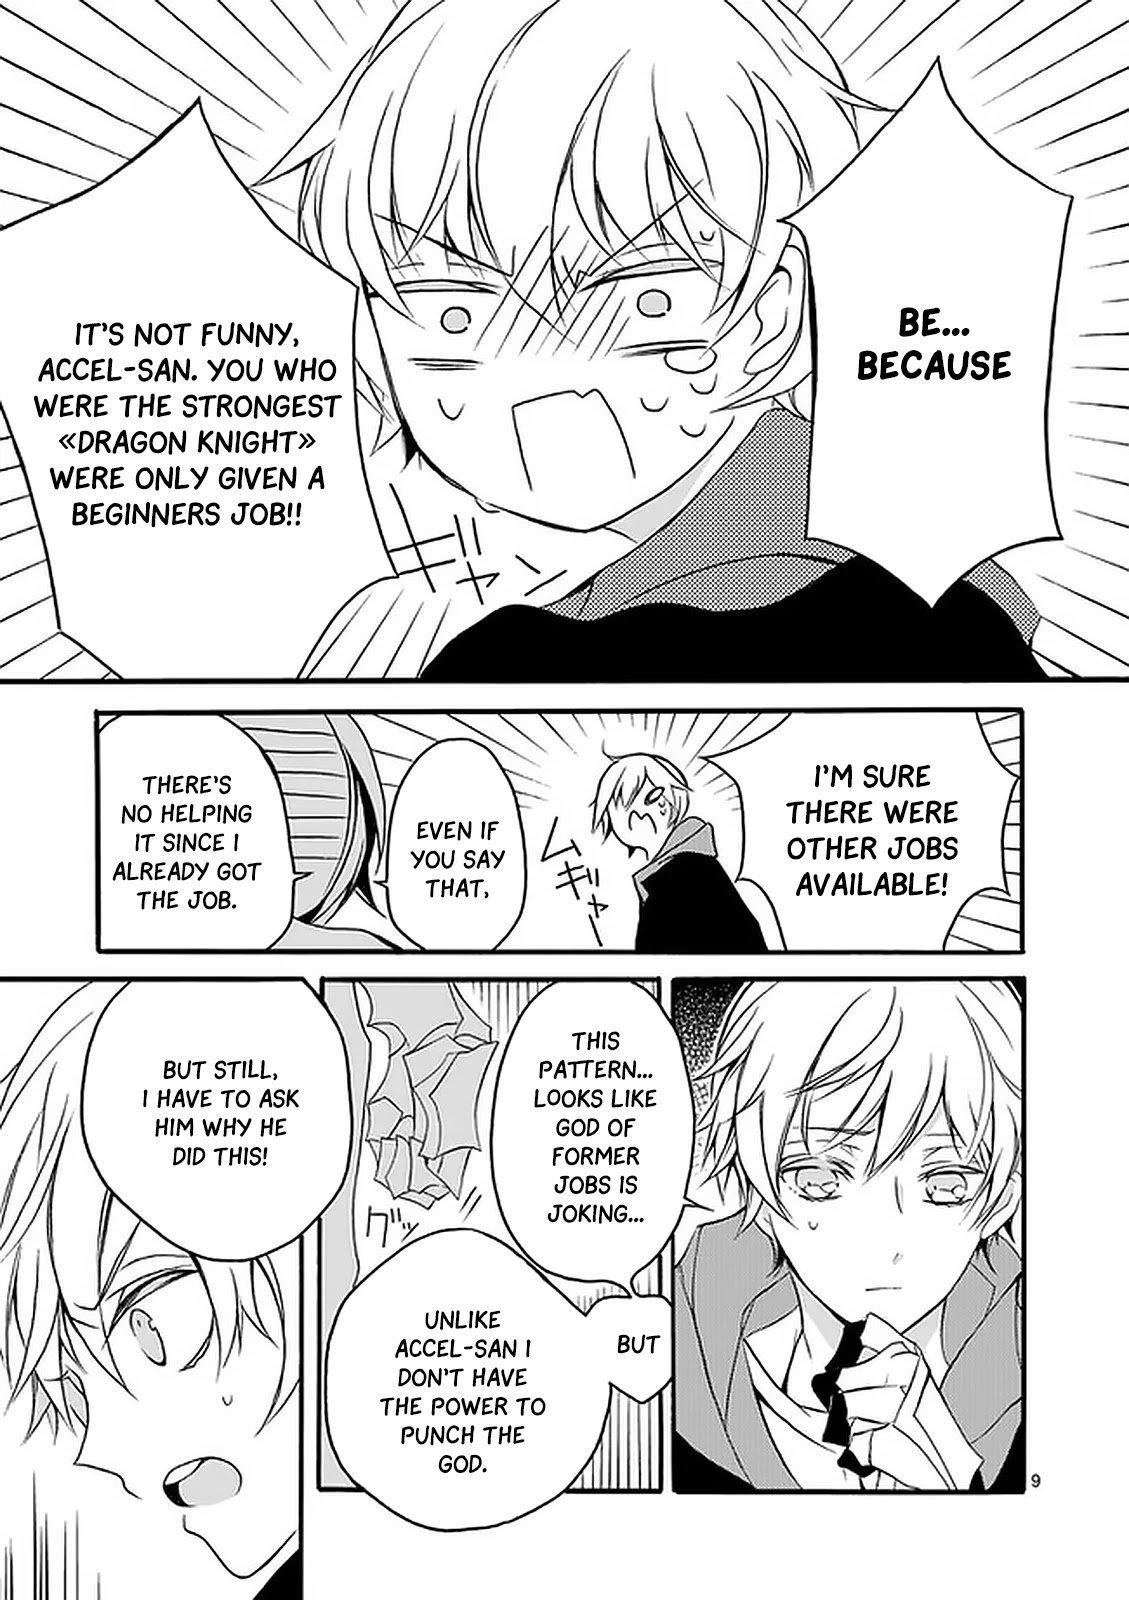 Manga From The Strongest Job of Dragon Knight, To The Beginner Job Carrier, Somehow, I Am Dependent On The Heroes - Chapter 2 Page 10